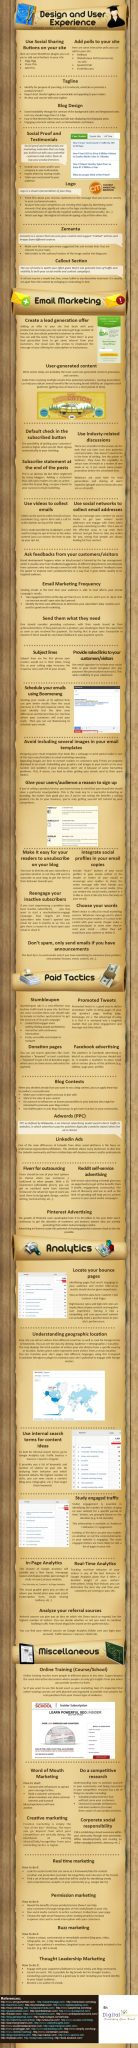 marketing-tactics-for-new-blogs-infographic